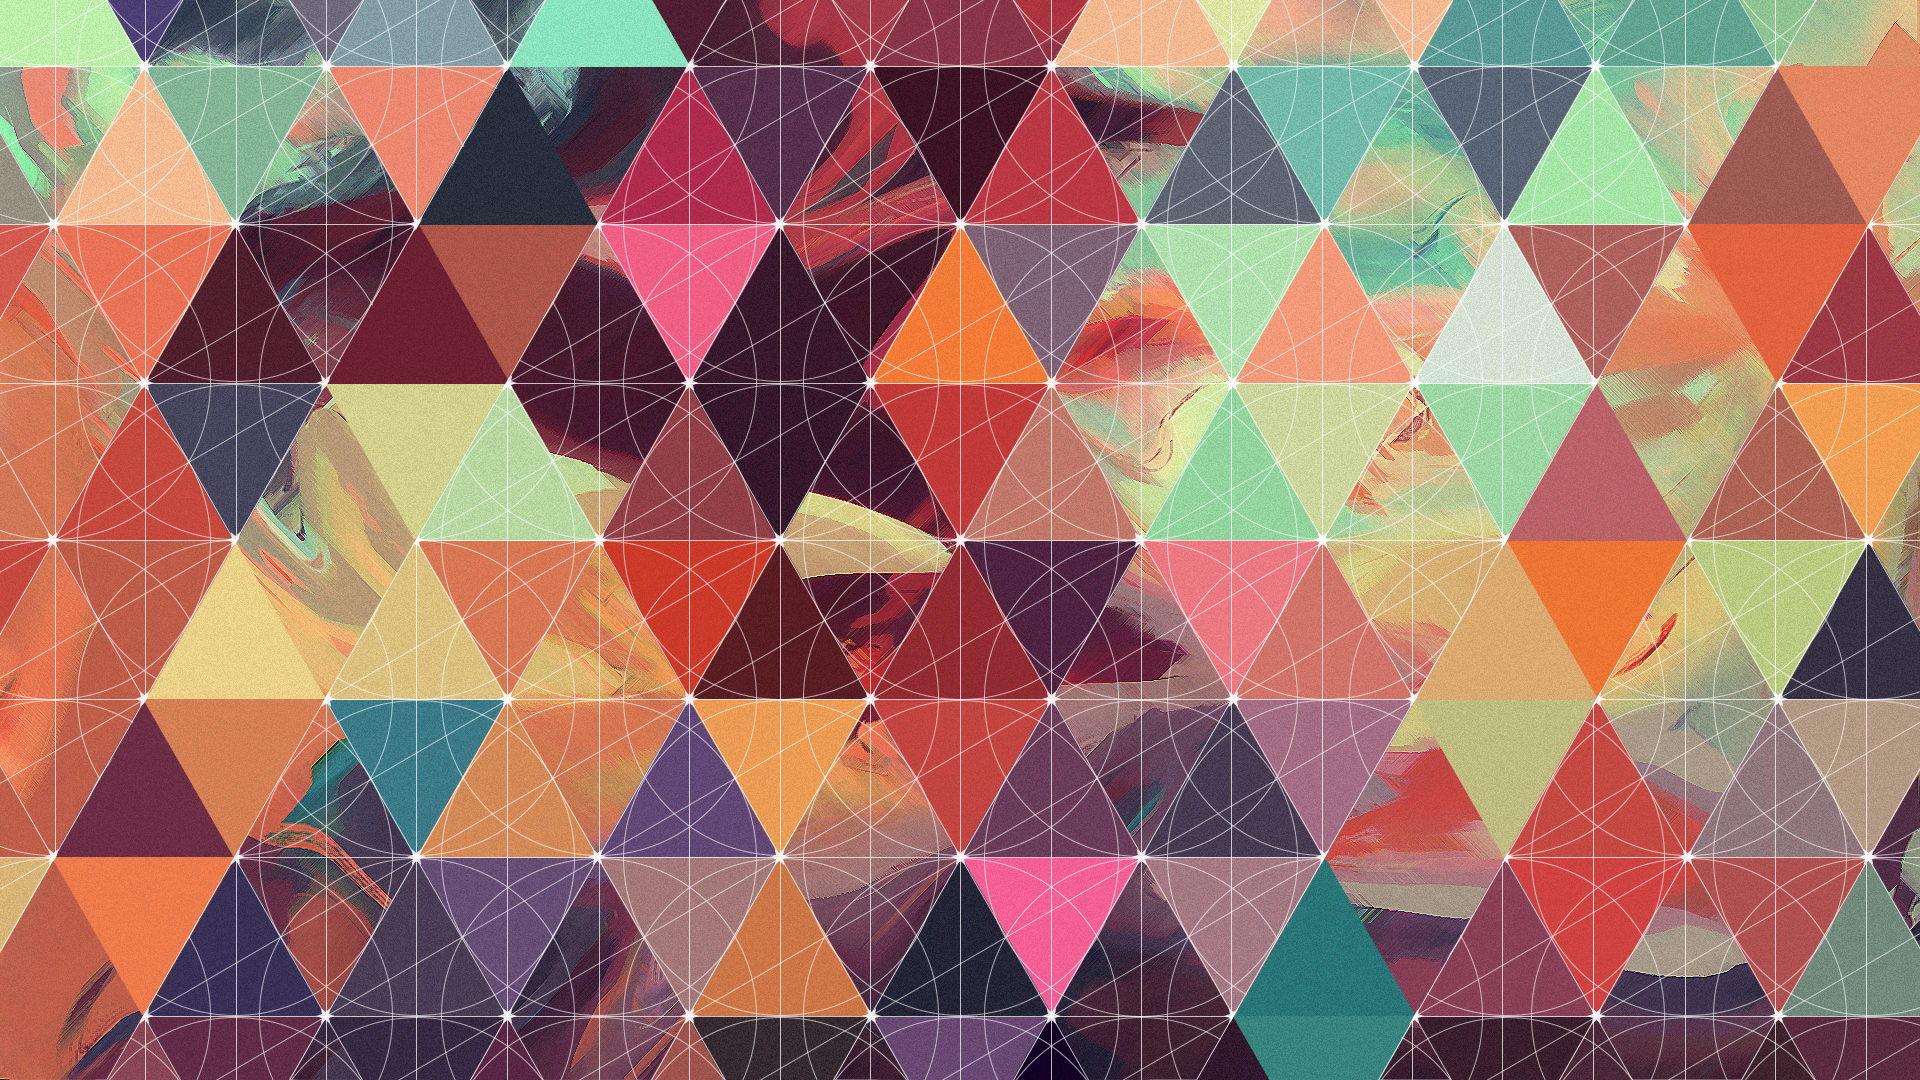 made a geometricabstract wallpaper today 1920x1080   Imgur 1920x1080